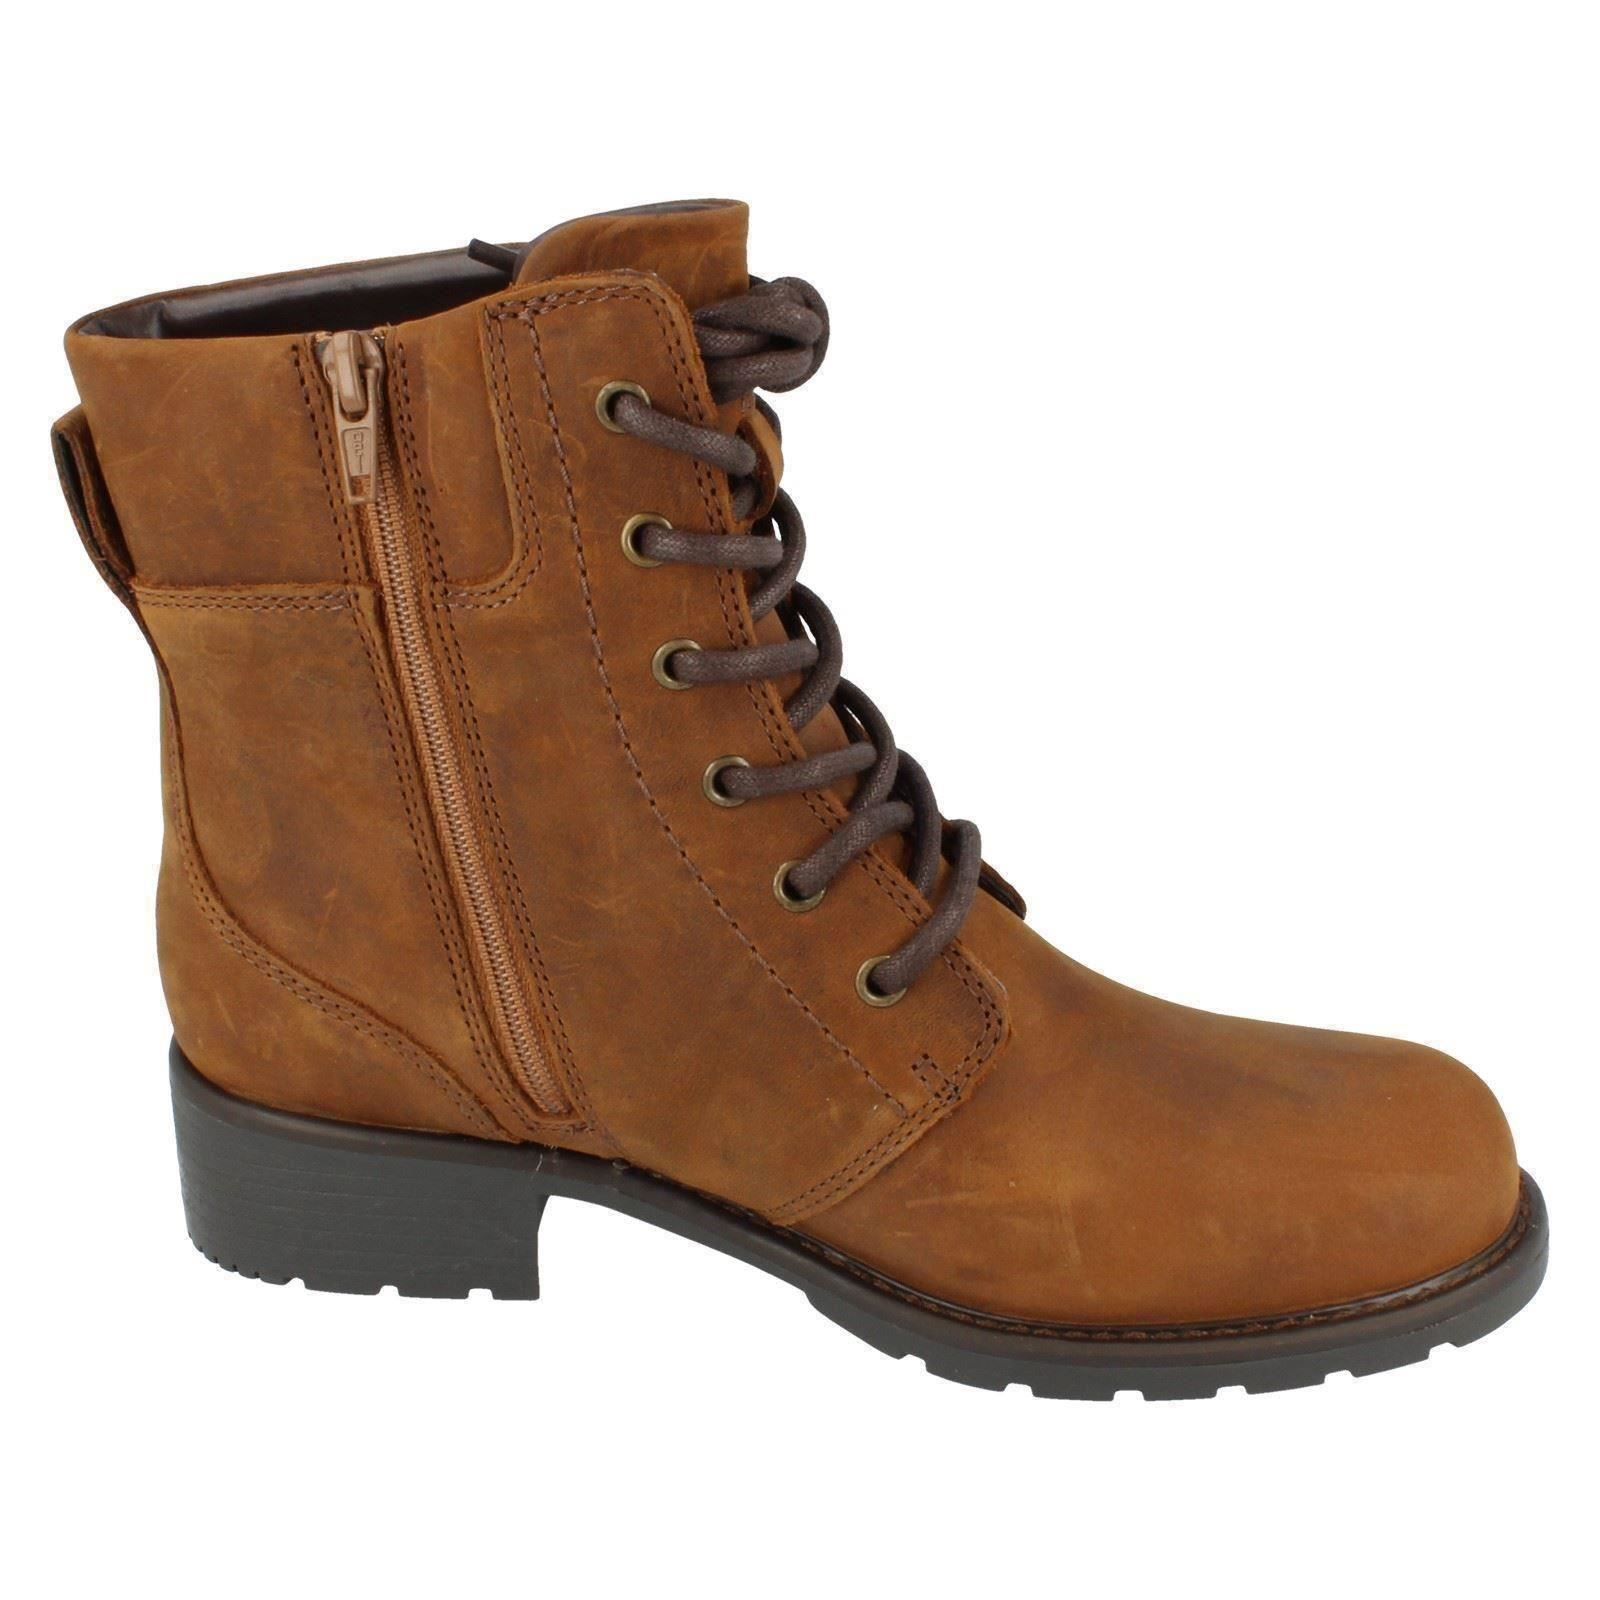 Ladies-Clarks-Casual-Lace-Up-Inside-Zip-Nubuck-Leather-Ankle-Boots-Orinoco-Spice thumbnail 25